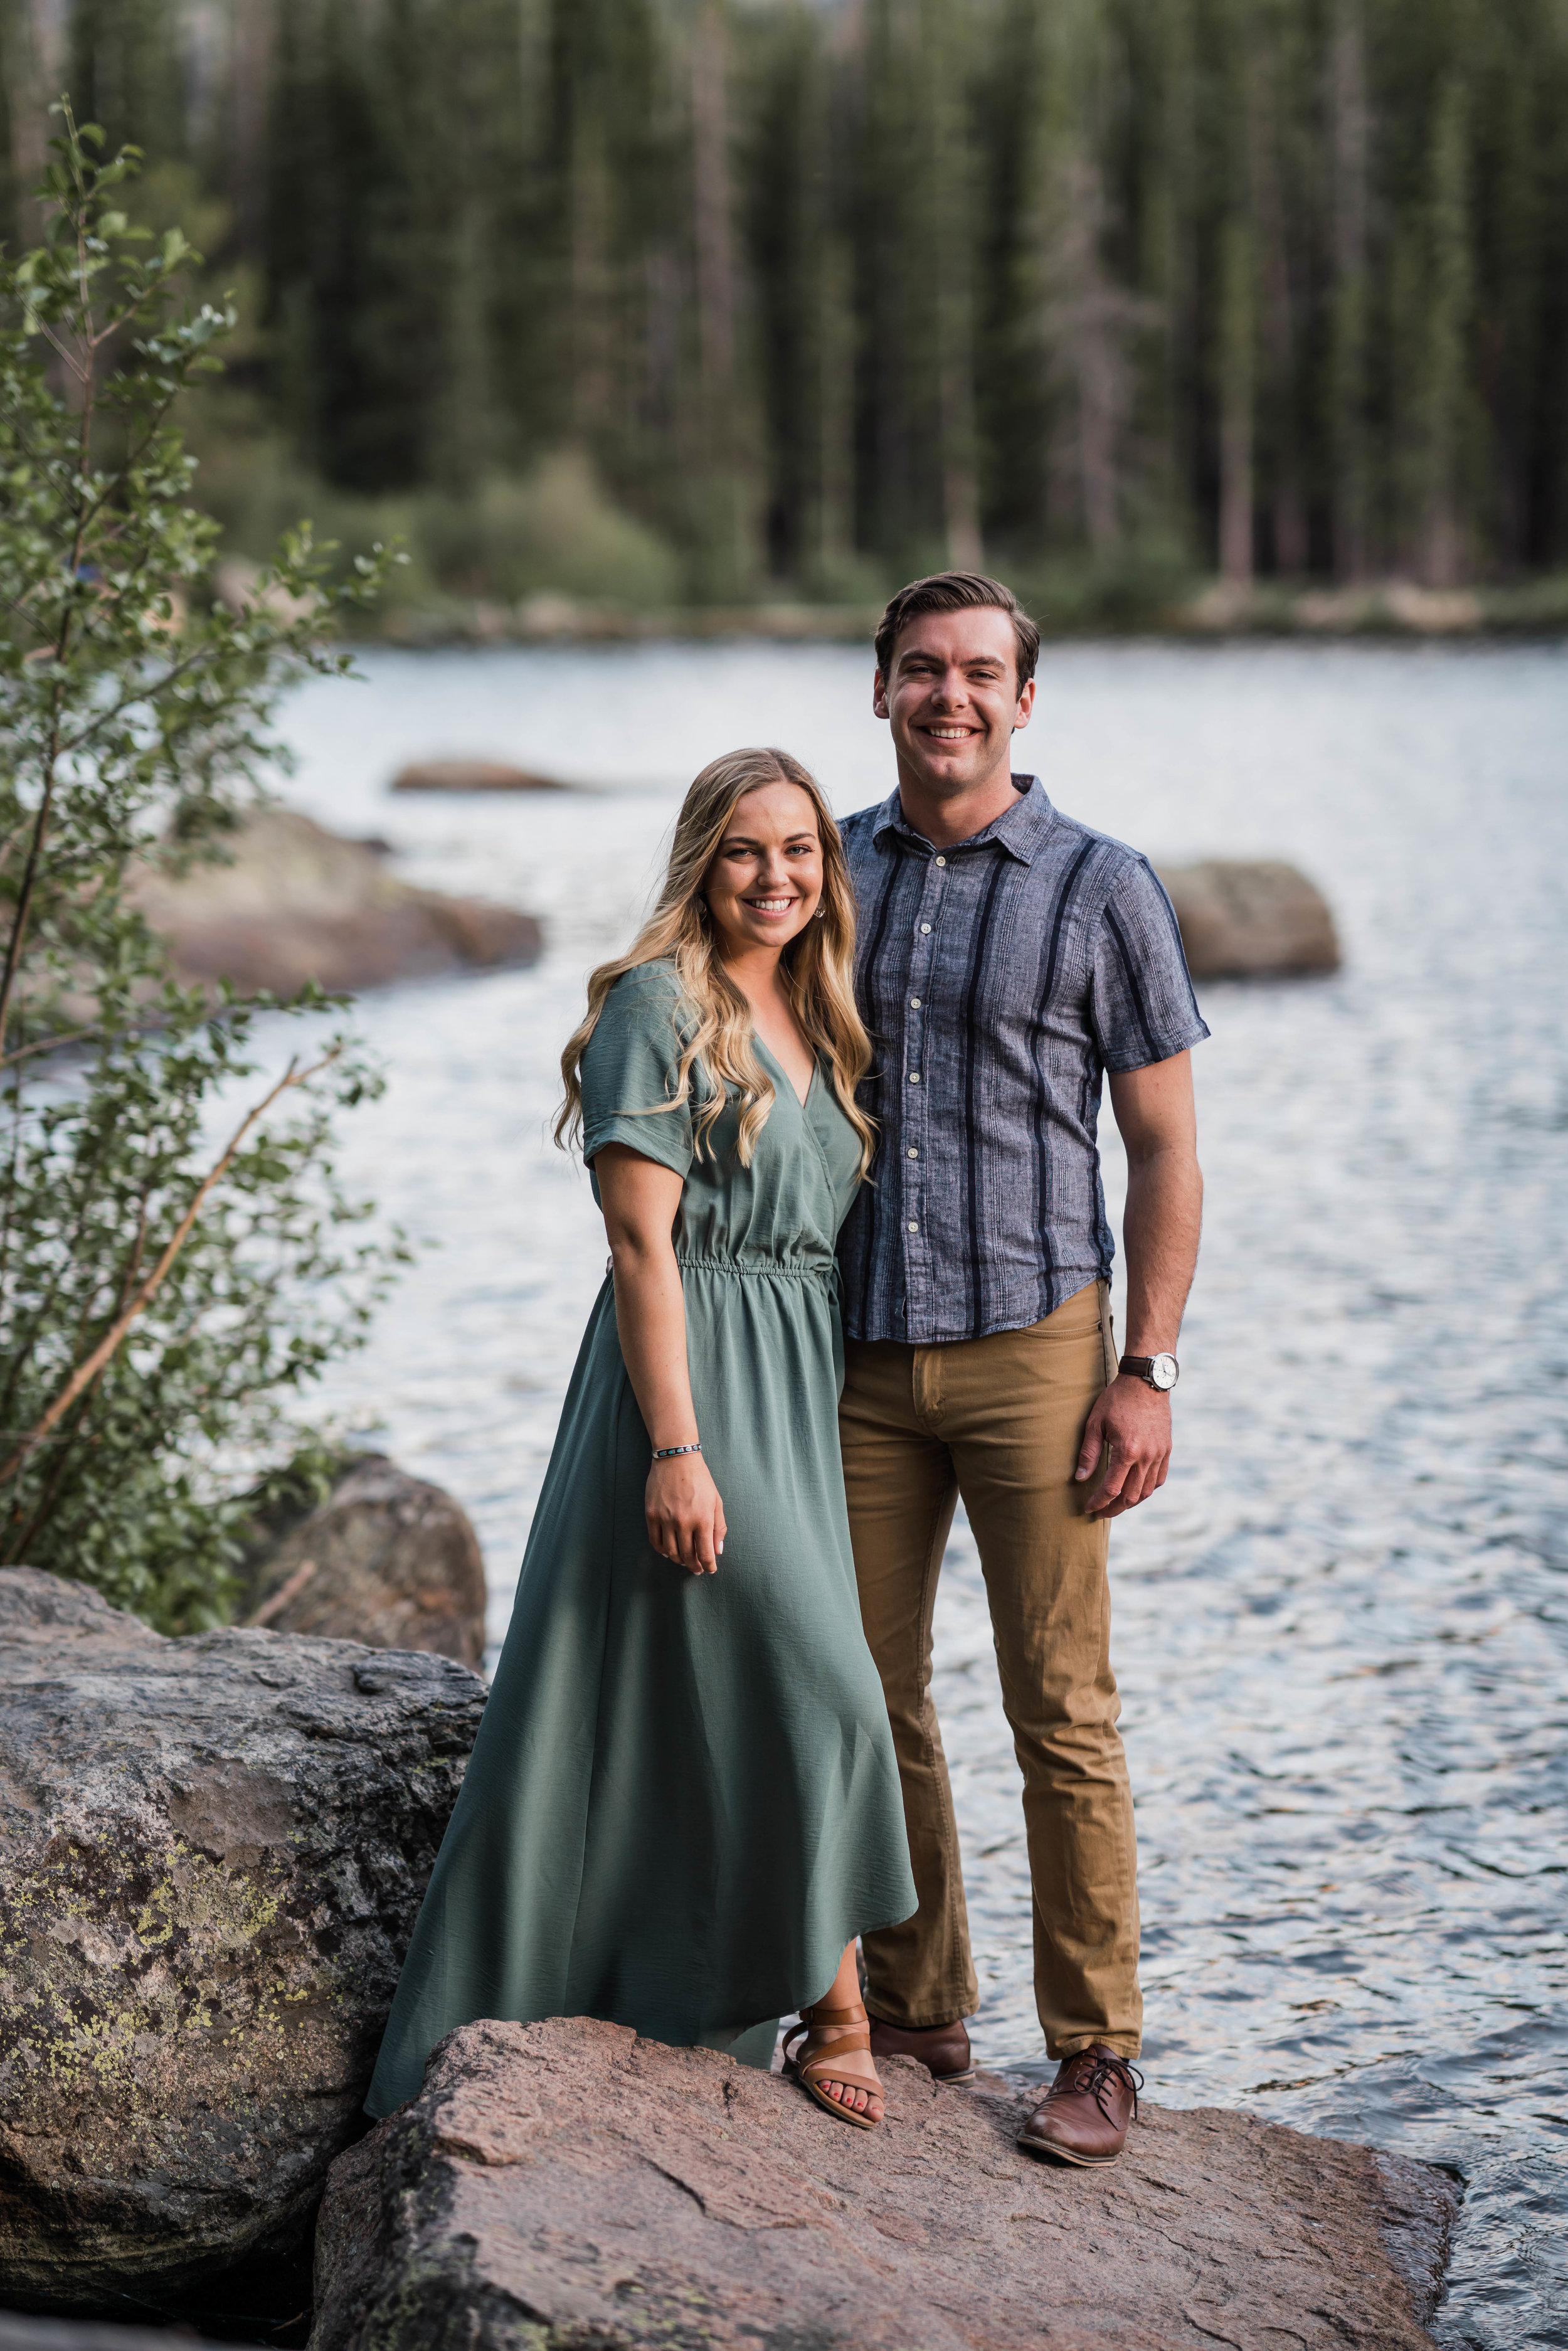 engagement photos in rocky mountain national park RMNP at bear lake -DSC01378.jpg